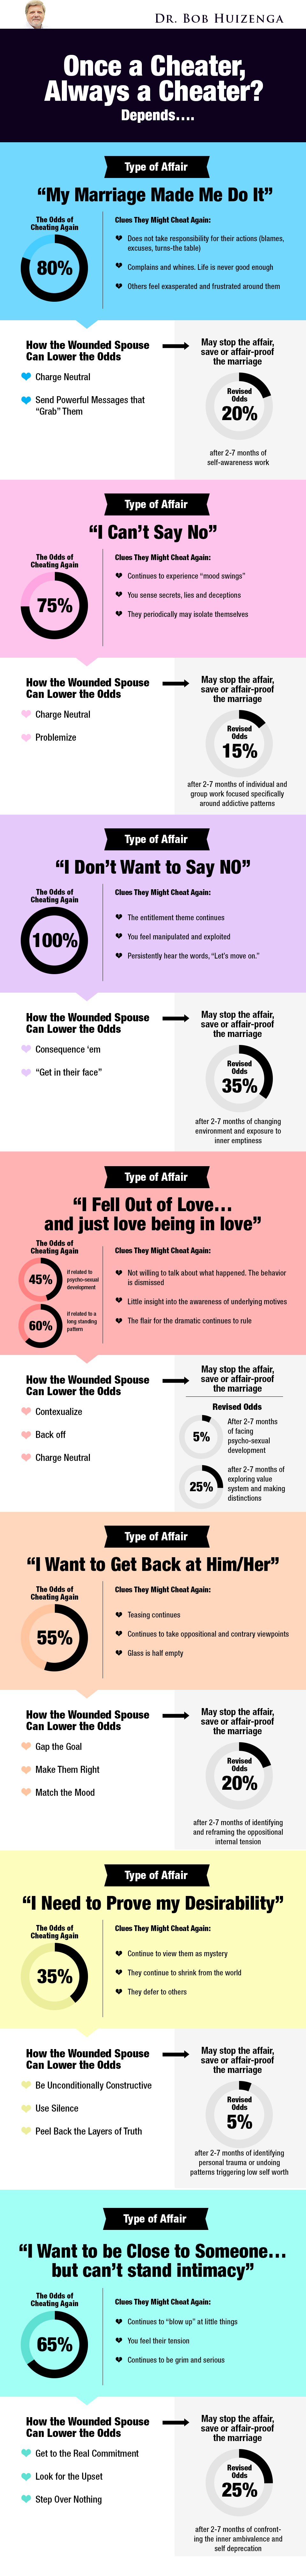 Infographic - Types of affair version3